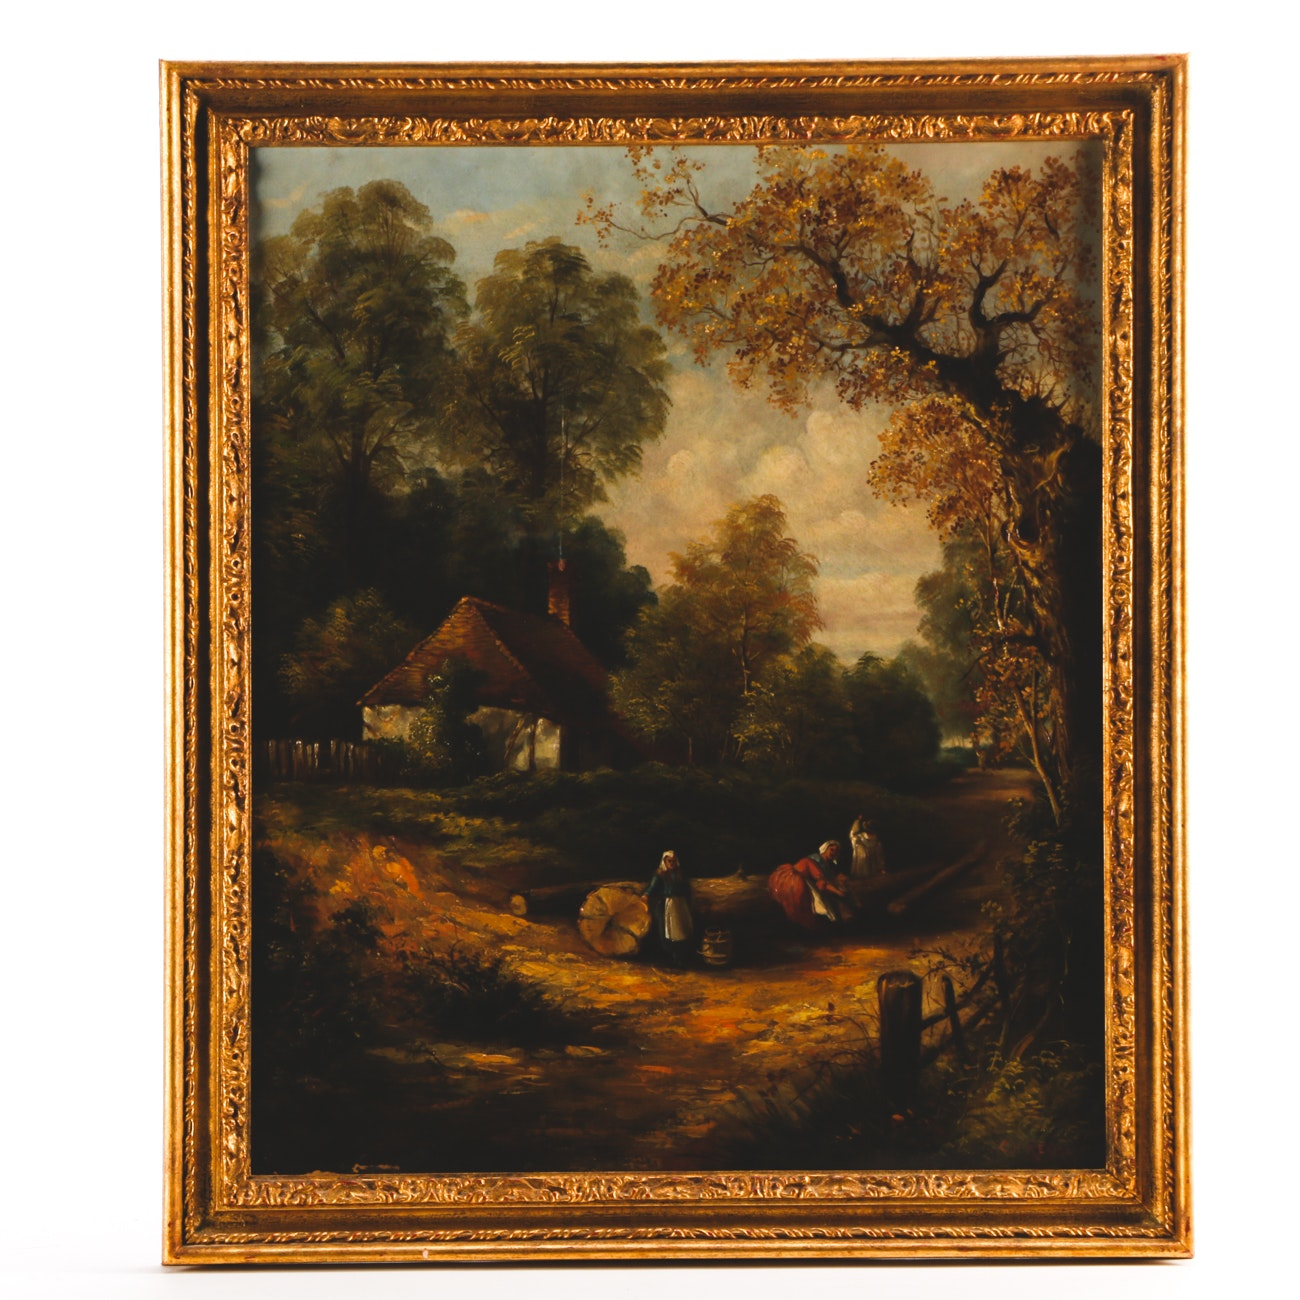 C. H. Revill Late 19th-Century Oil on Canvas Landscape with Figures